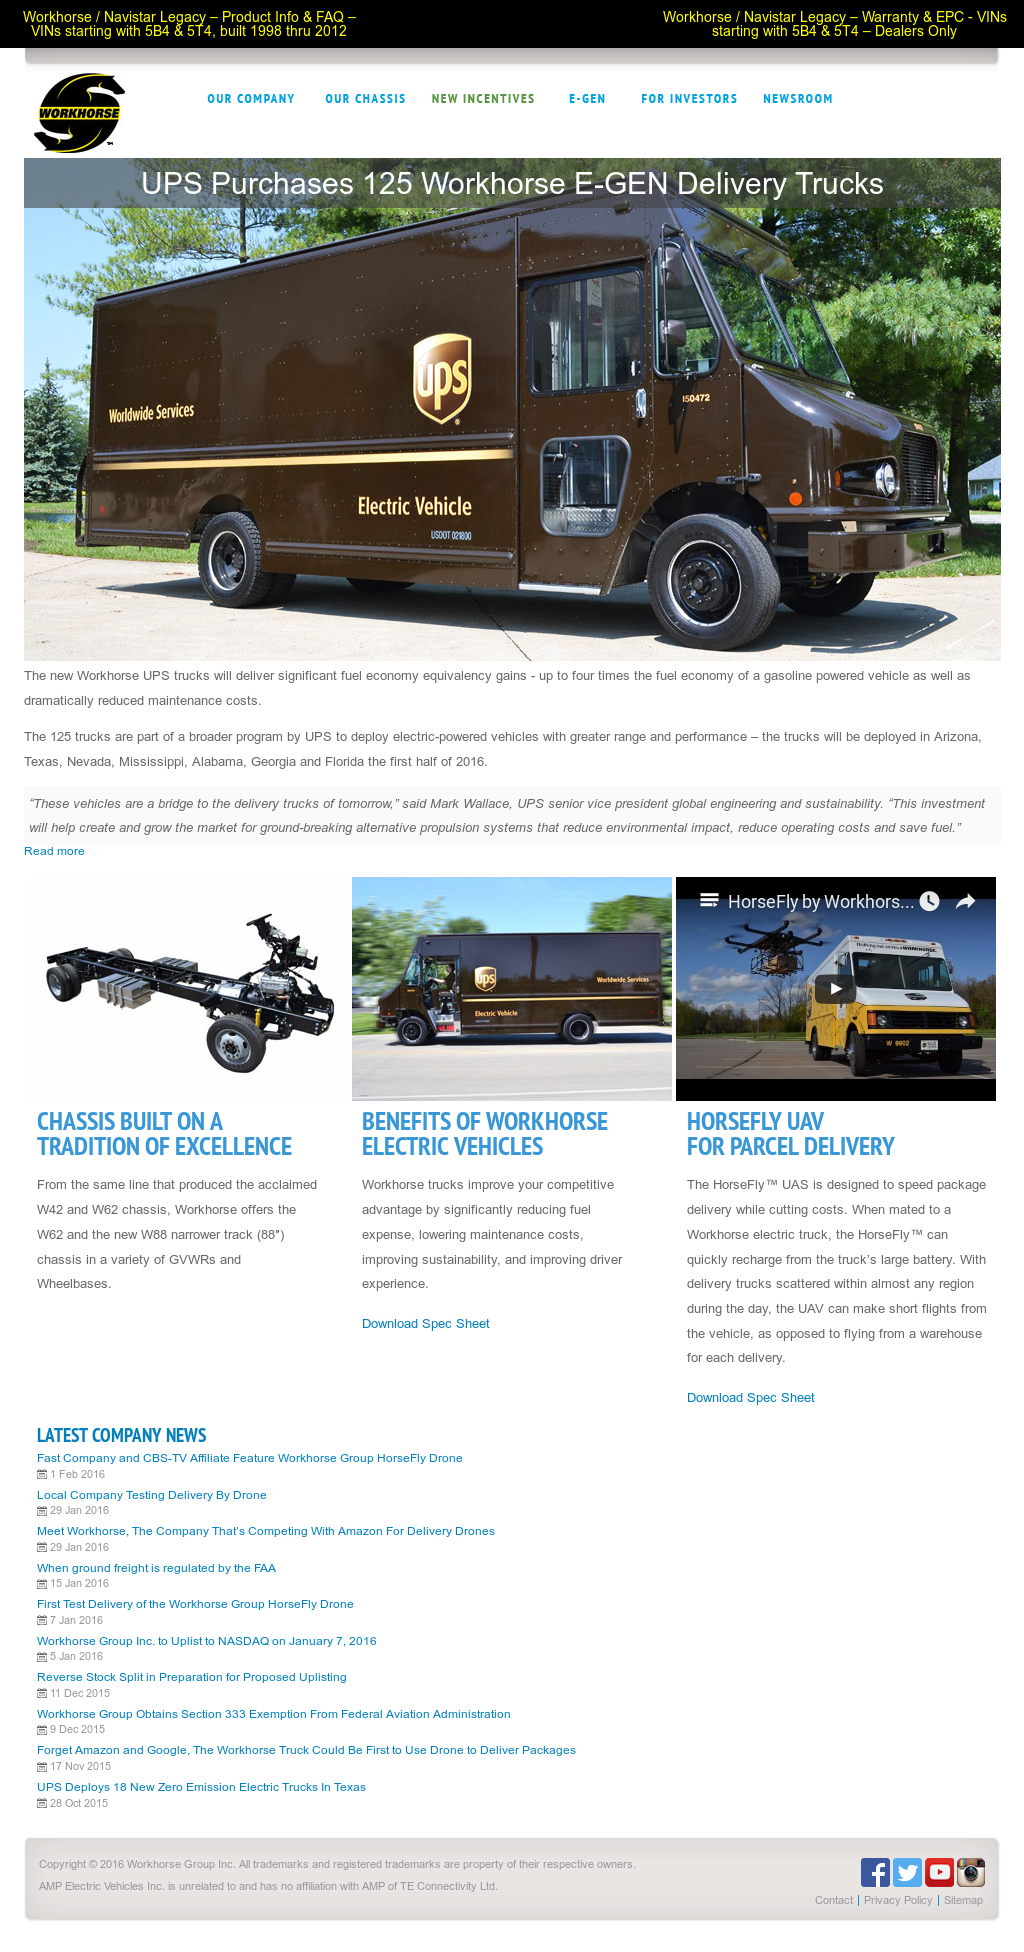 Workhorse Competitors, Revenue and Employees - Owler Company Profile